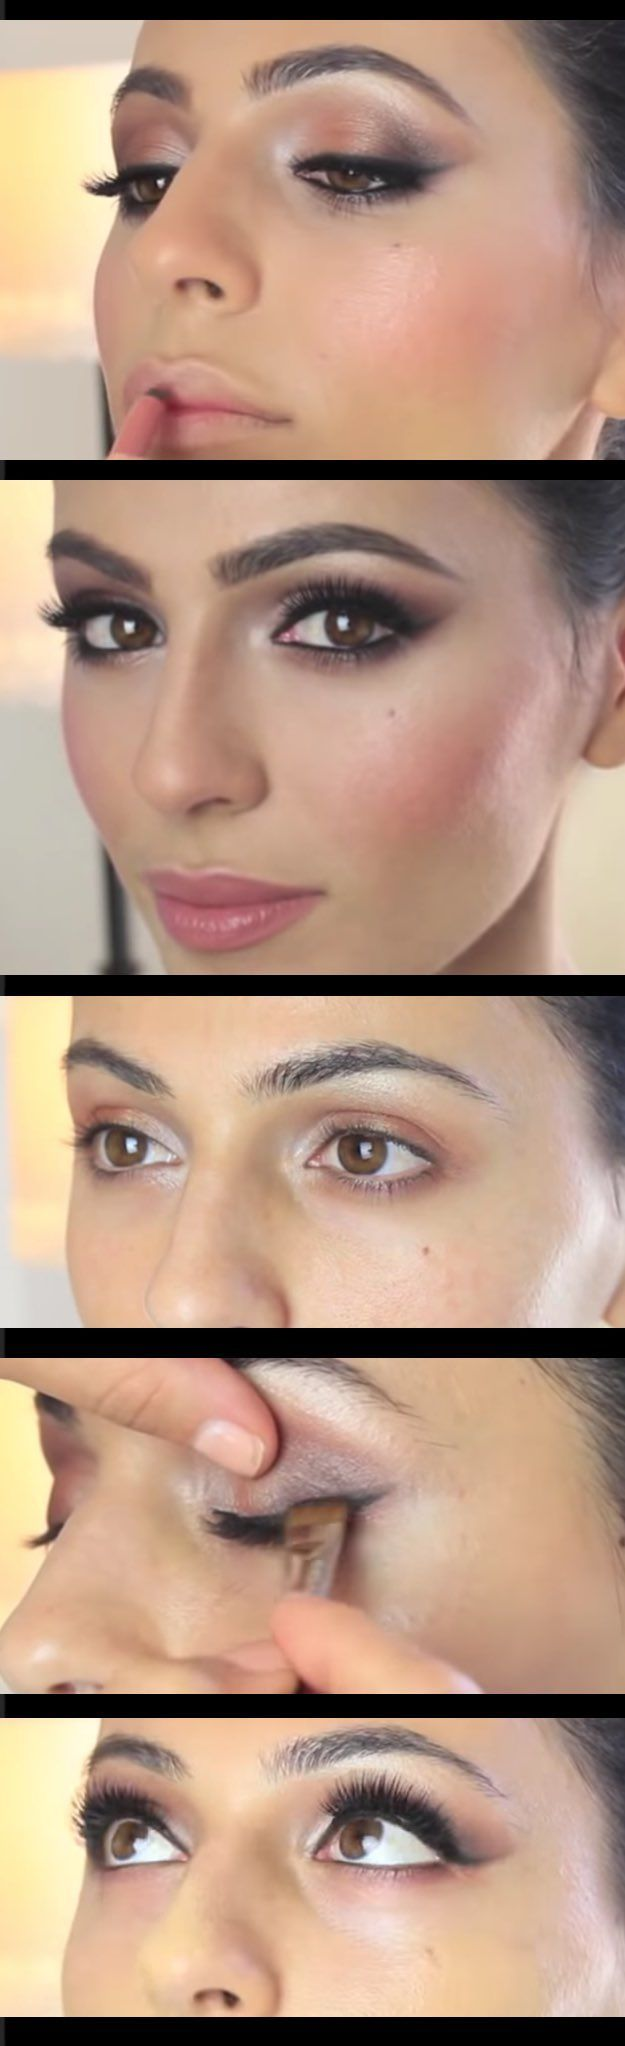 Wedding Makeup Ideas for Brides - Bridal Makeup Tutorial Simply Sona - Romantic make up ideas for the wedding - Natural and Airbrush techniques that look great with blue, green and brown eyes - rusti evening glow looks - https://www.thegoddess.com/wedding-makeup-for-brides